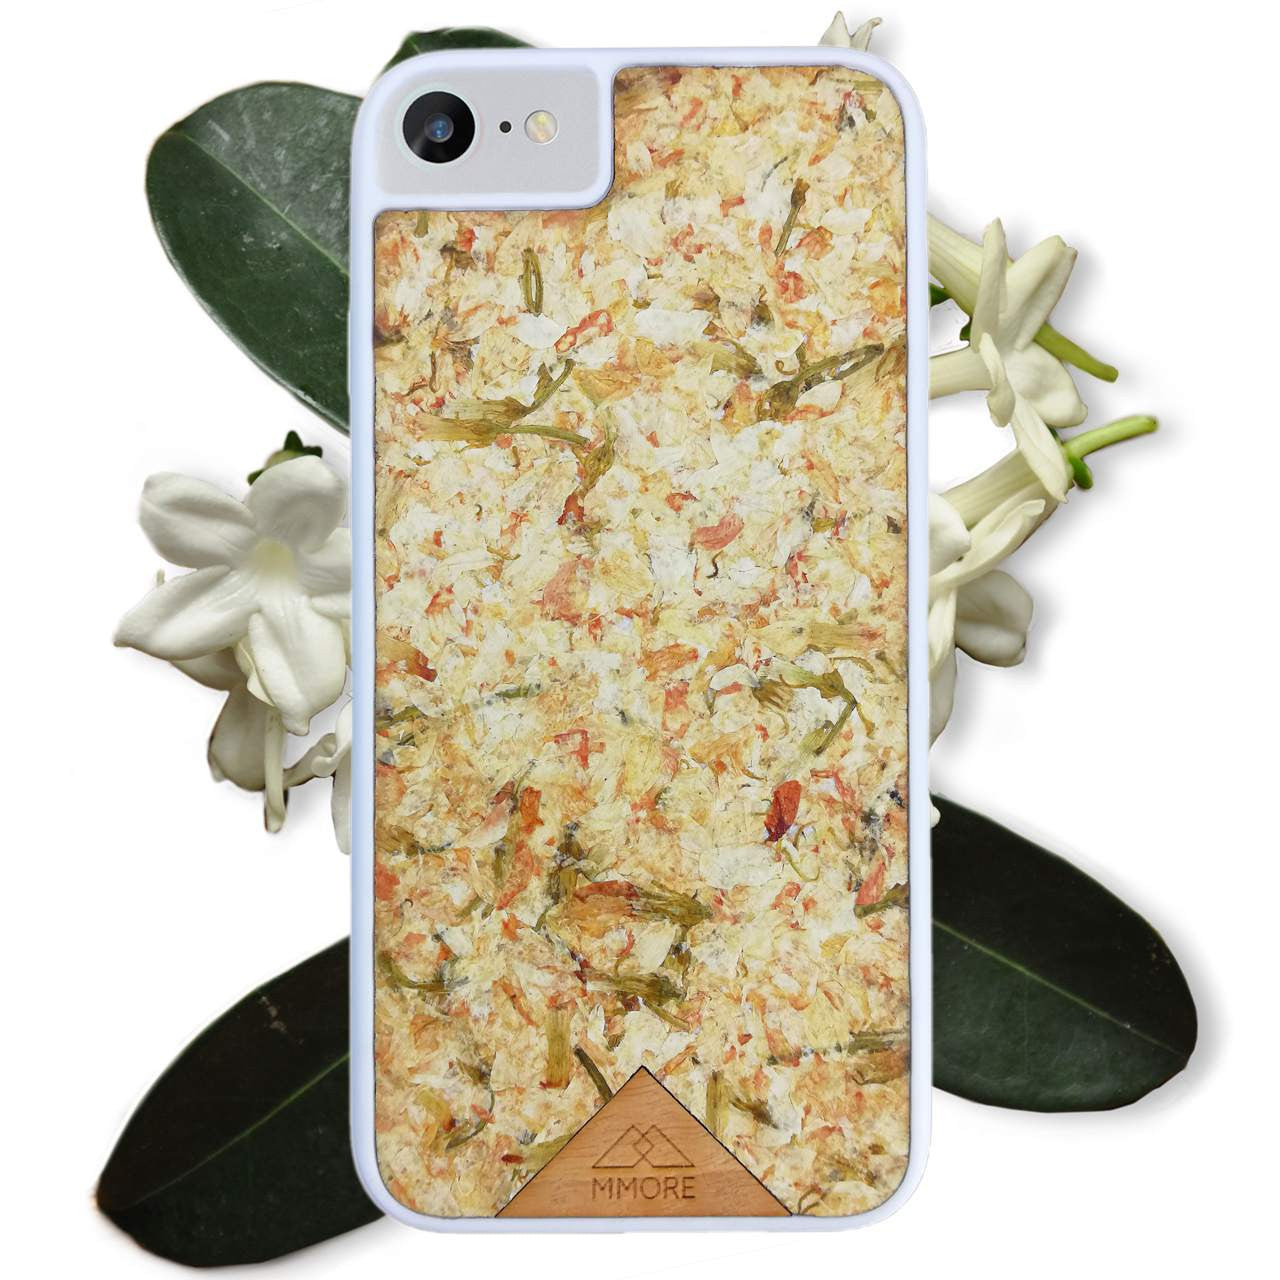 MMORE Organika Jasmine Phone Case - Royal Loot